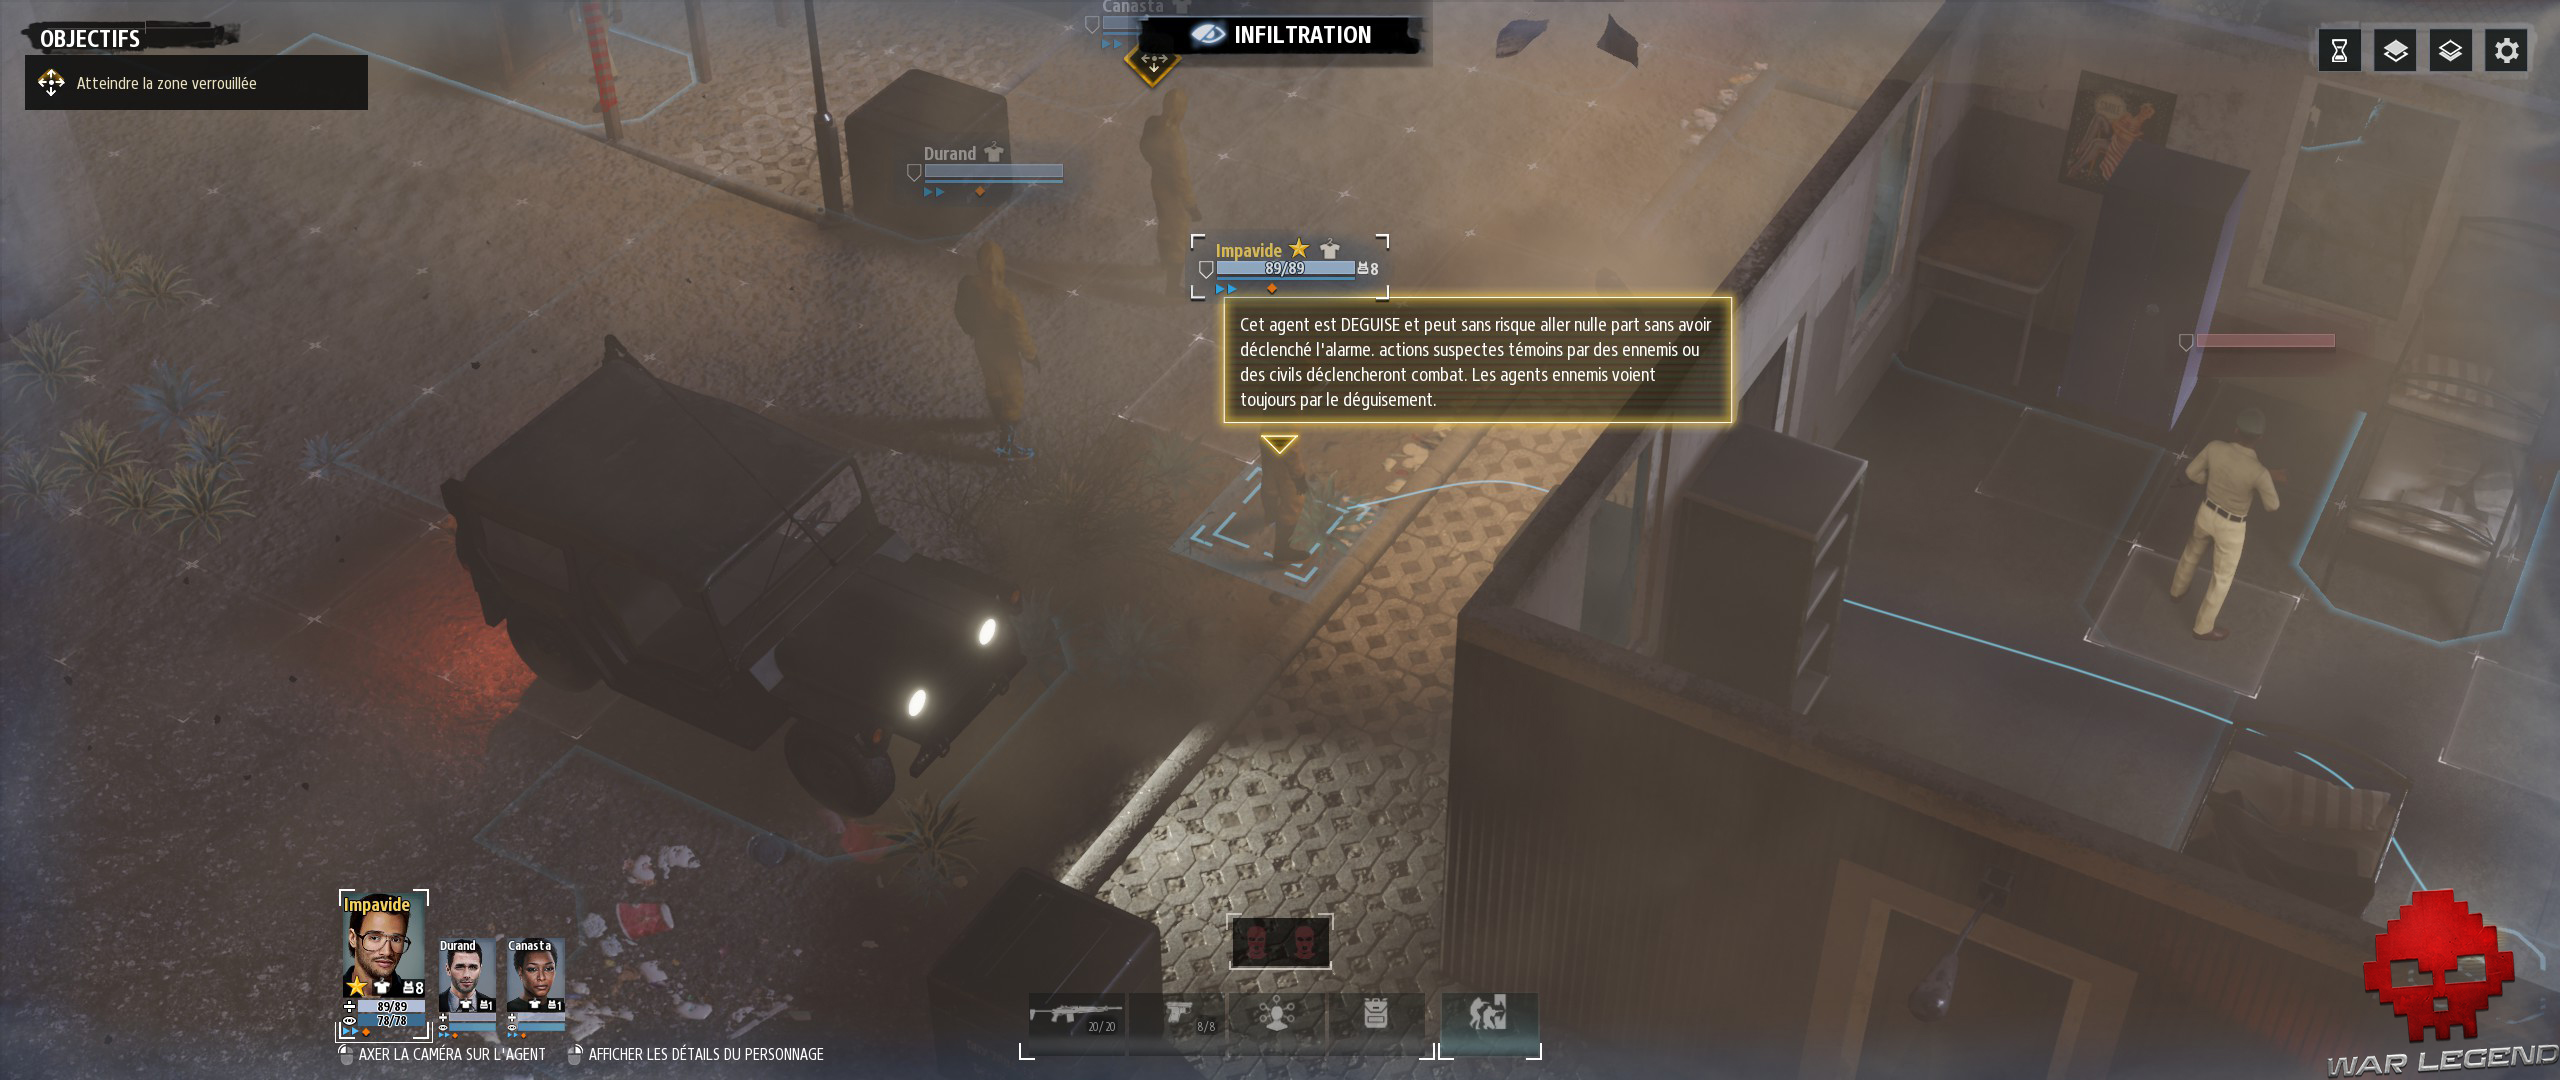 Test Phantom Doctrine texte avertissement action suspecte